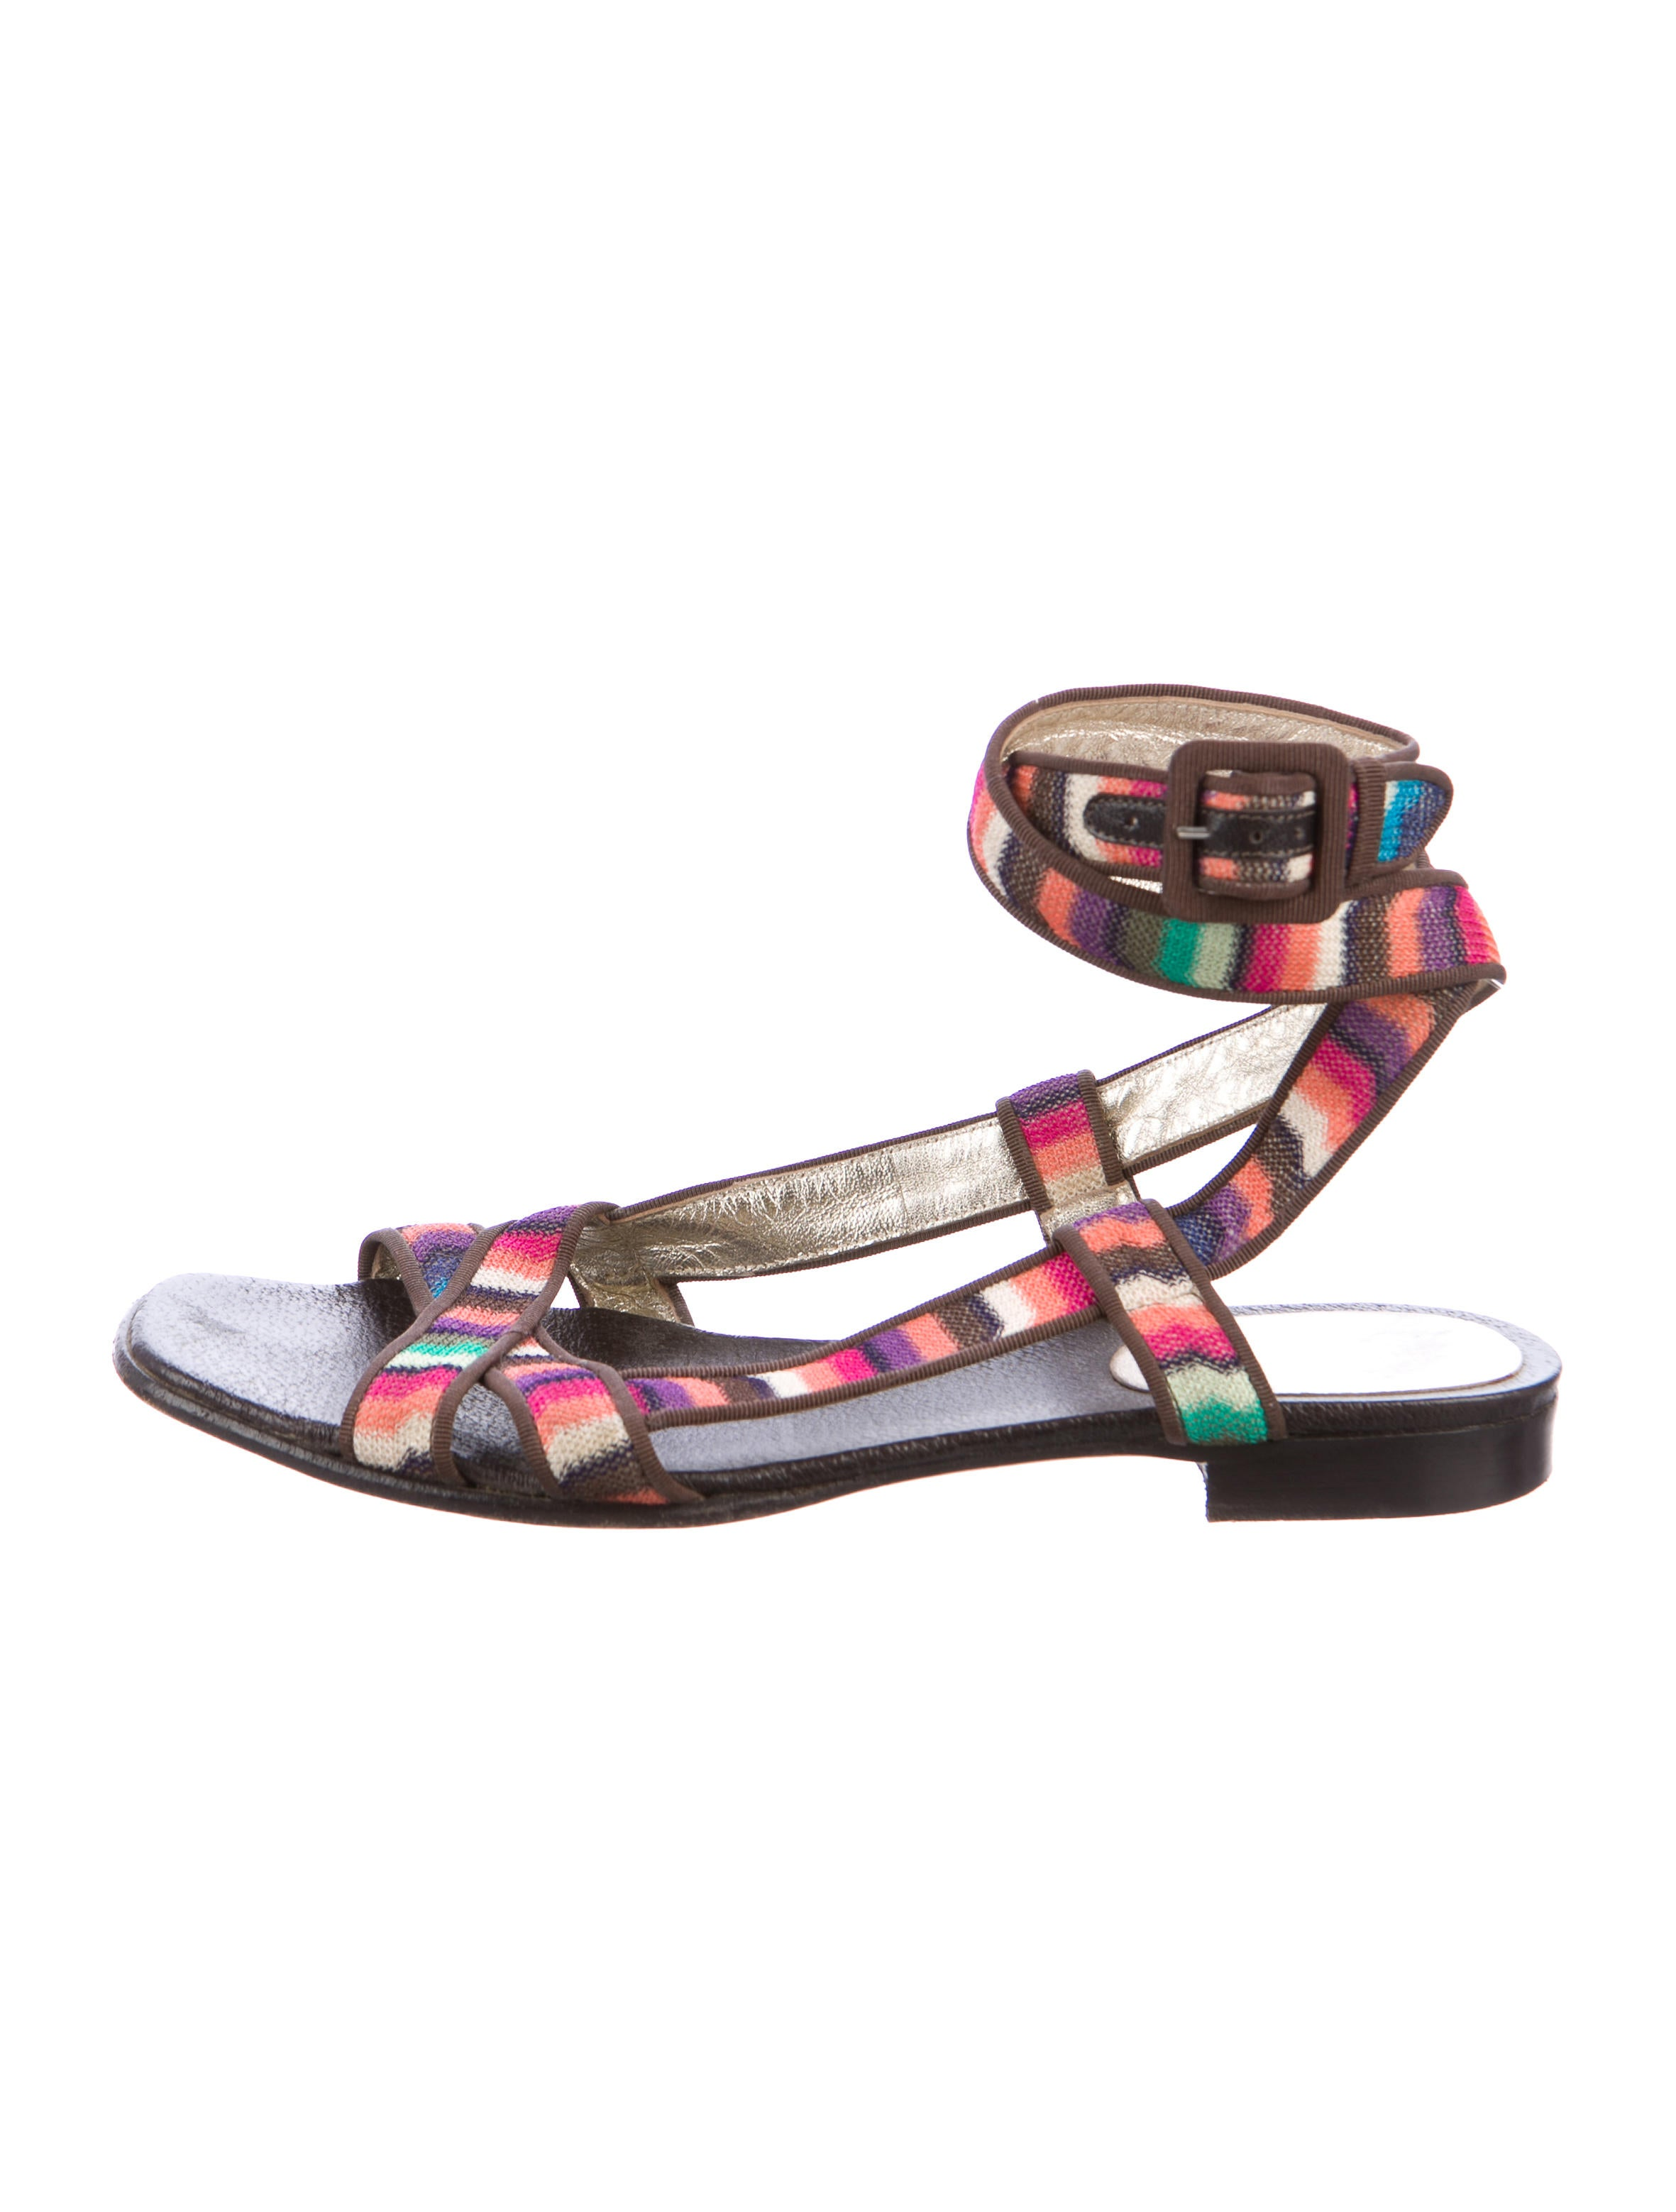 Missoni Knit Ankle Strap Sandals buy cheap eastbay looking for discounts X6JRgx2J4